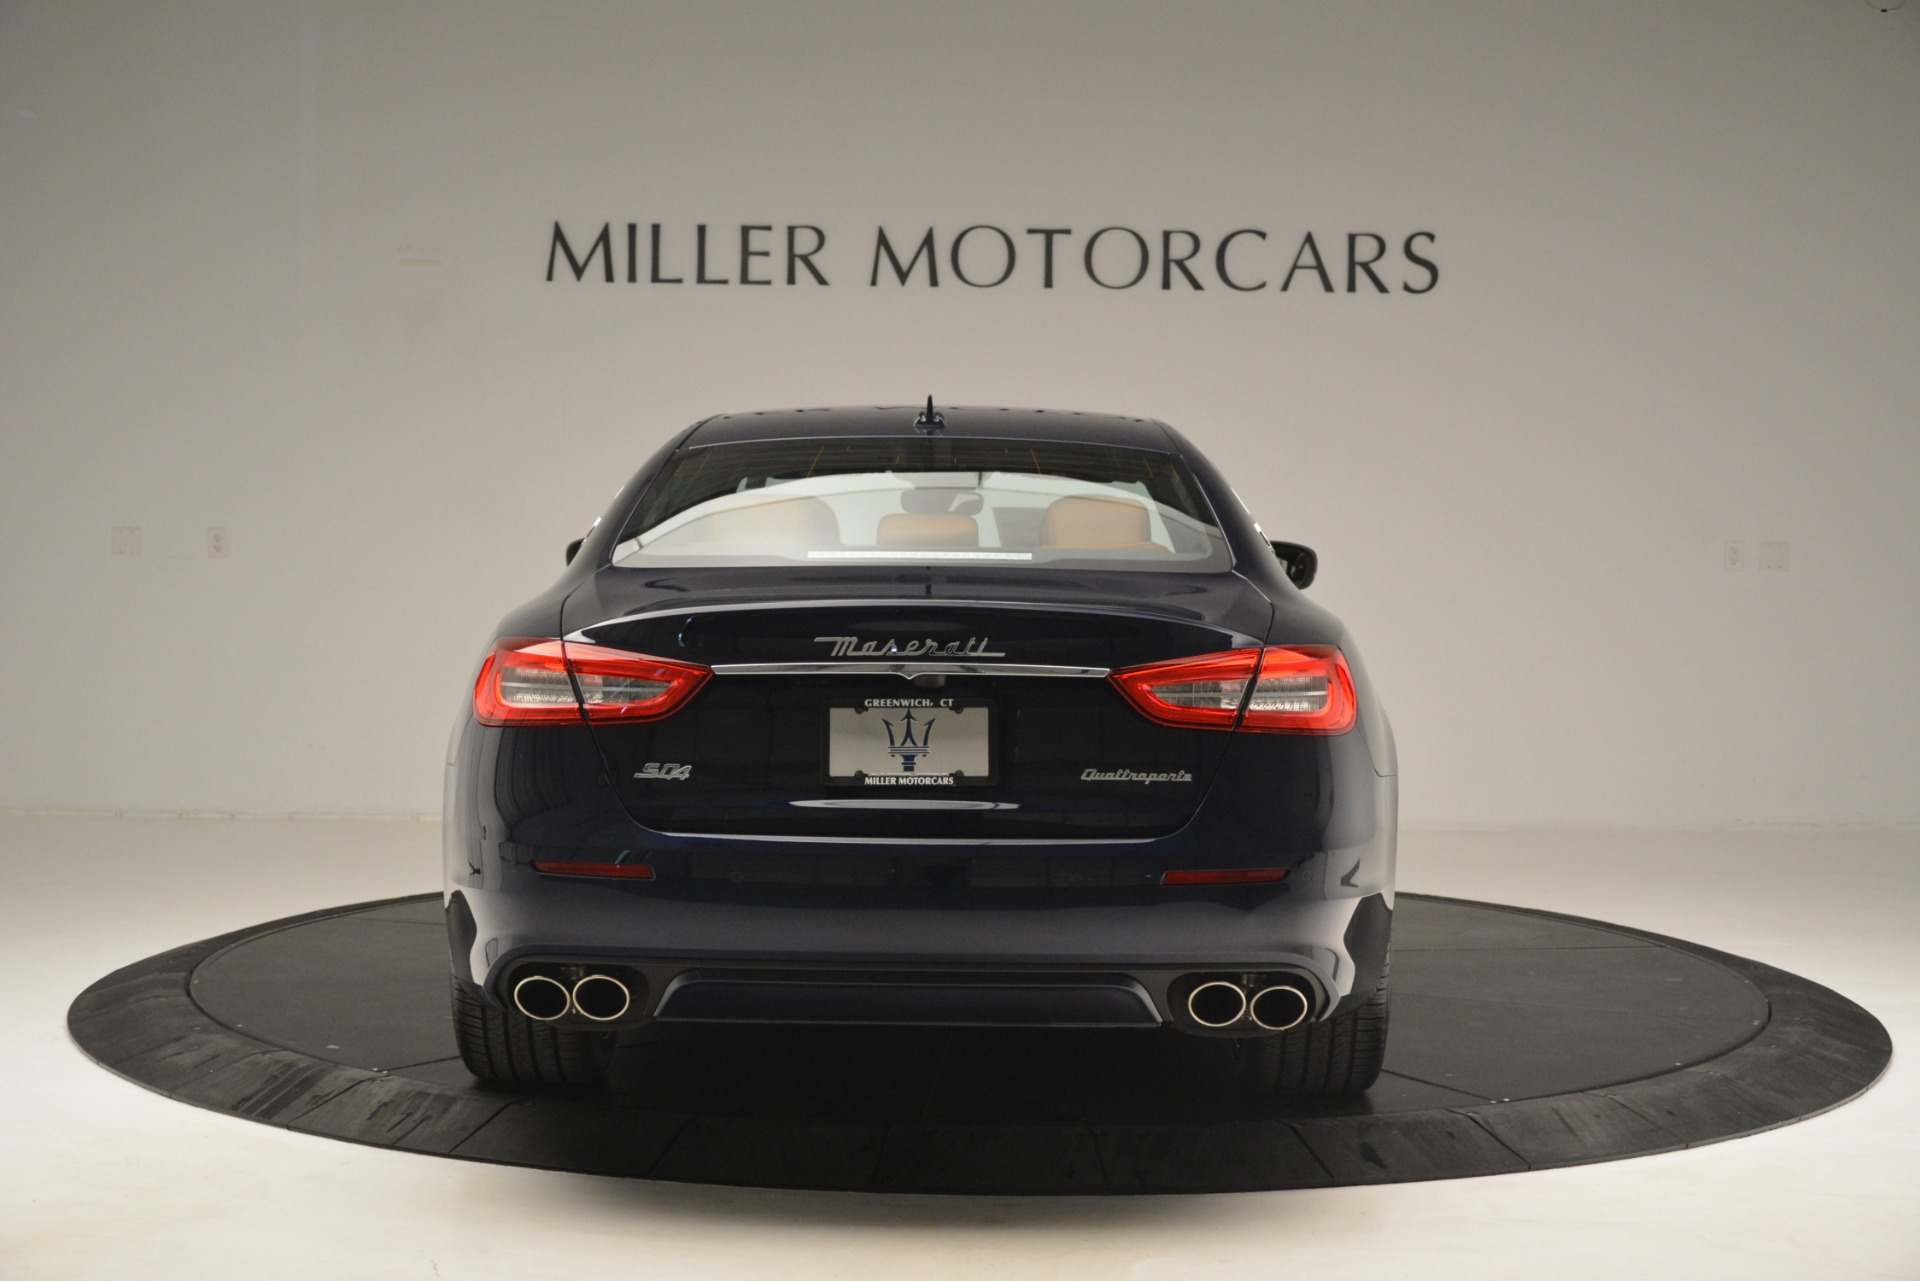 New 2019 Maserati Quattroporte S Q4 GranLusso For Sale 125245 In Greenwich, CT